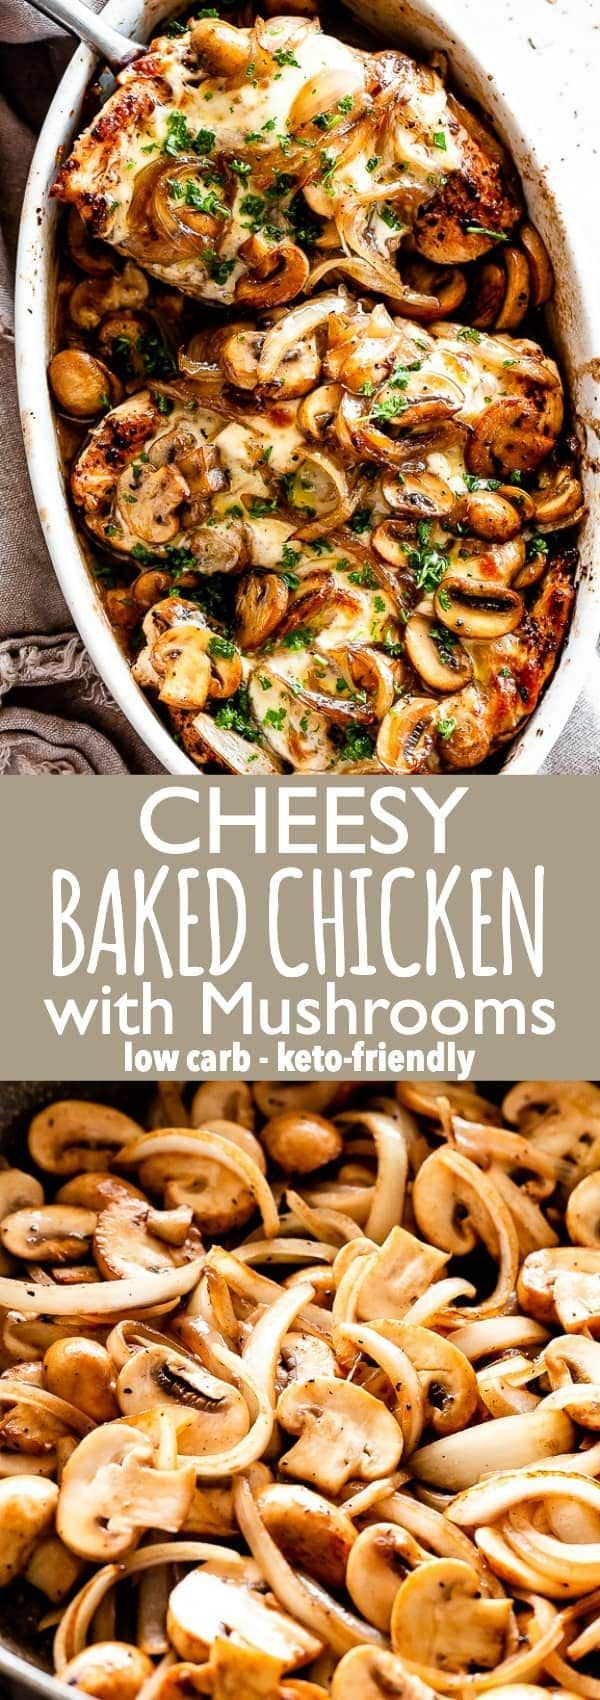 Cheesy Baked Chicken with Mushrooms – An easy recipe for baked chicken breasts c… – recipes for dinner